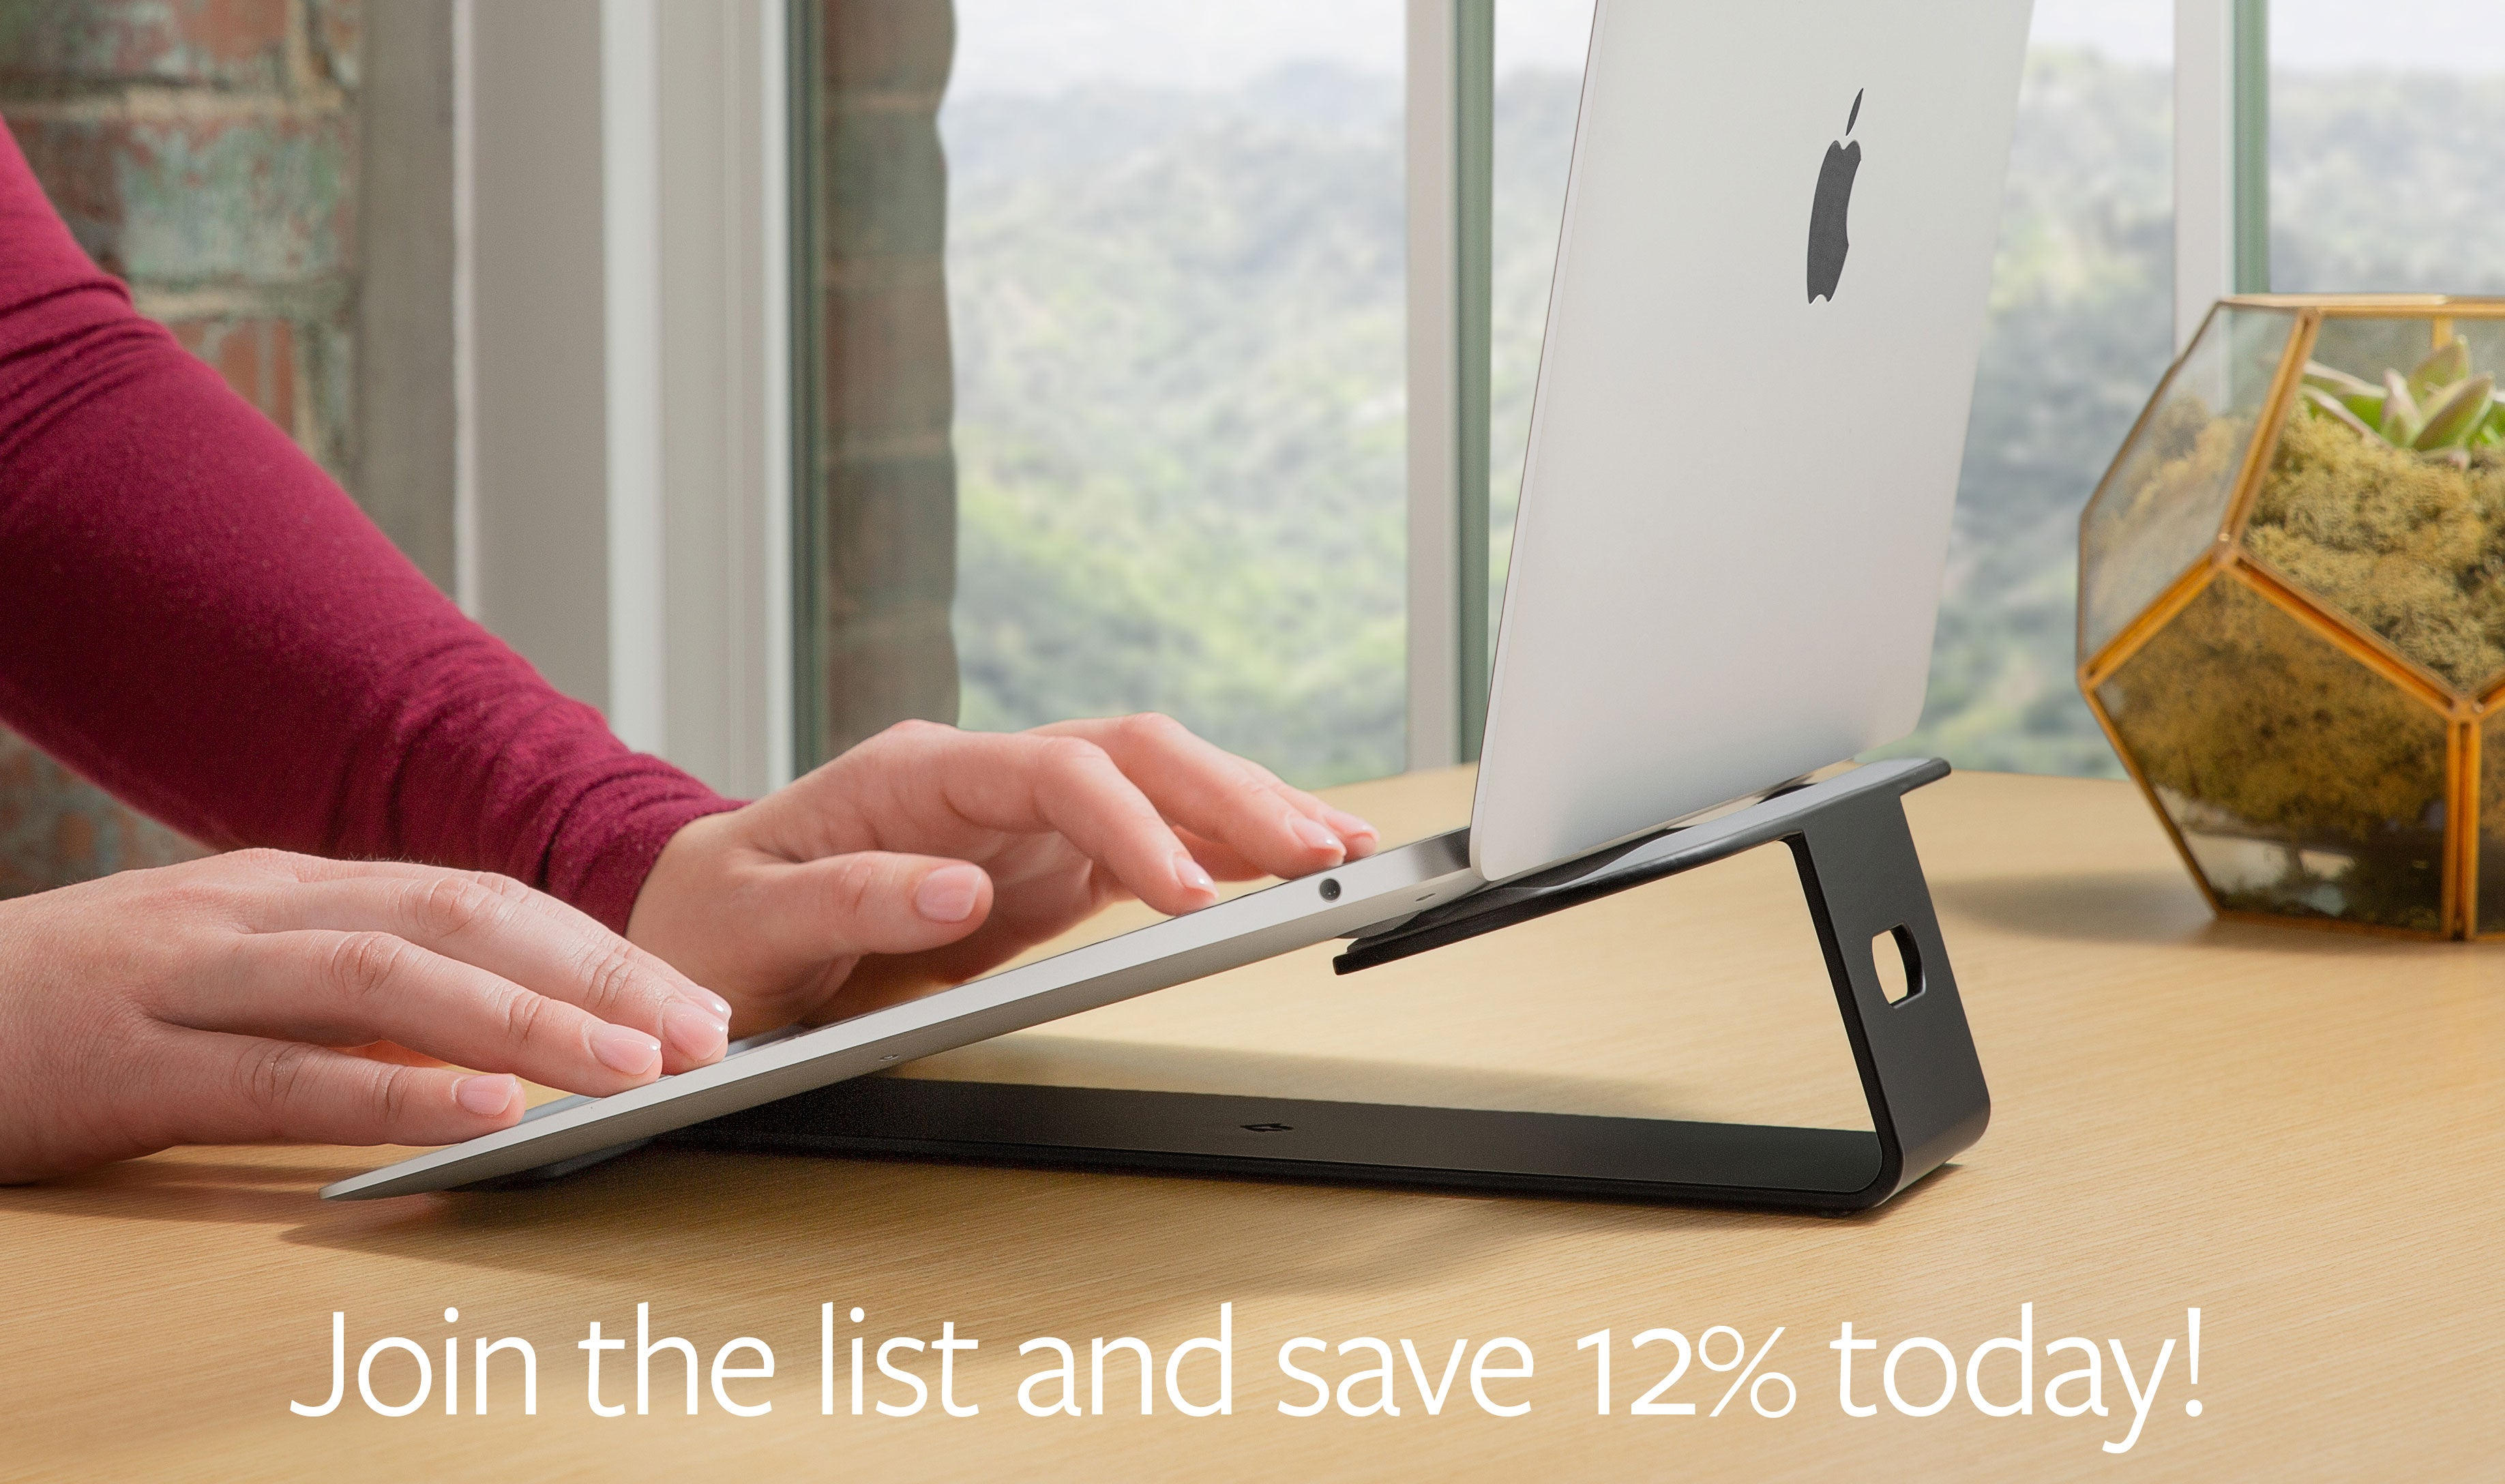 Join the list and save 12% today!